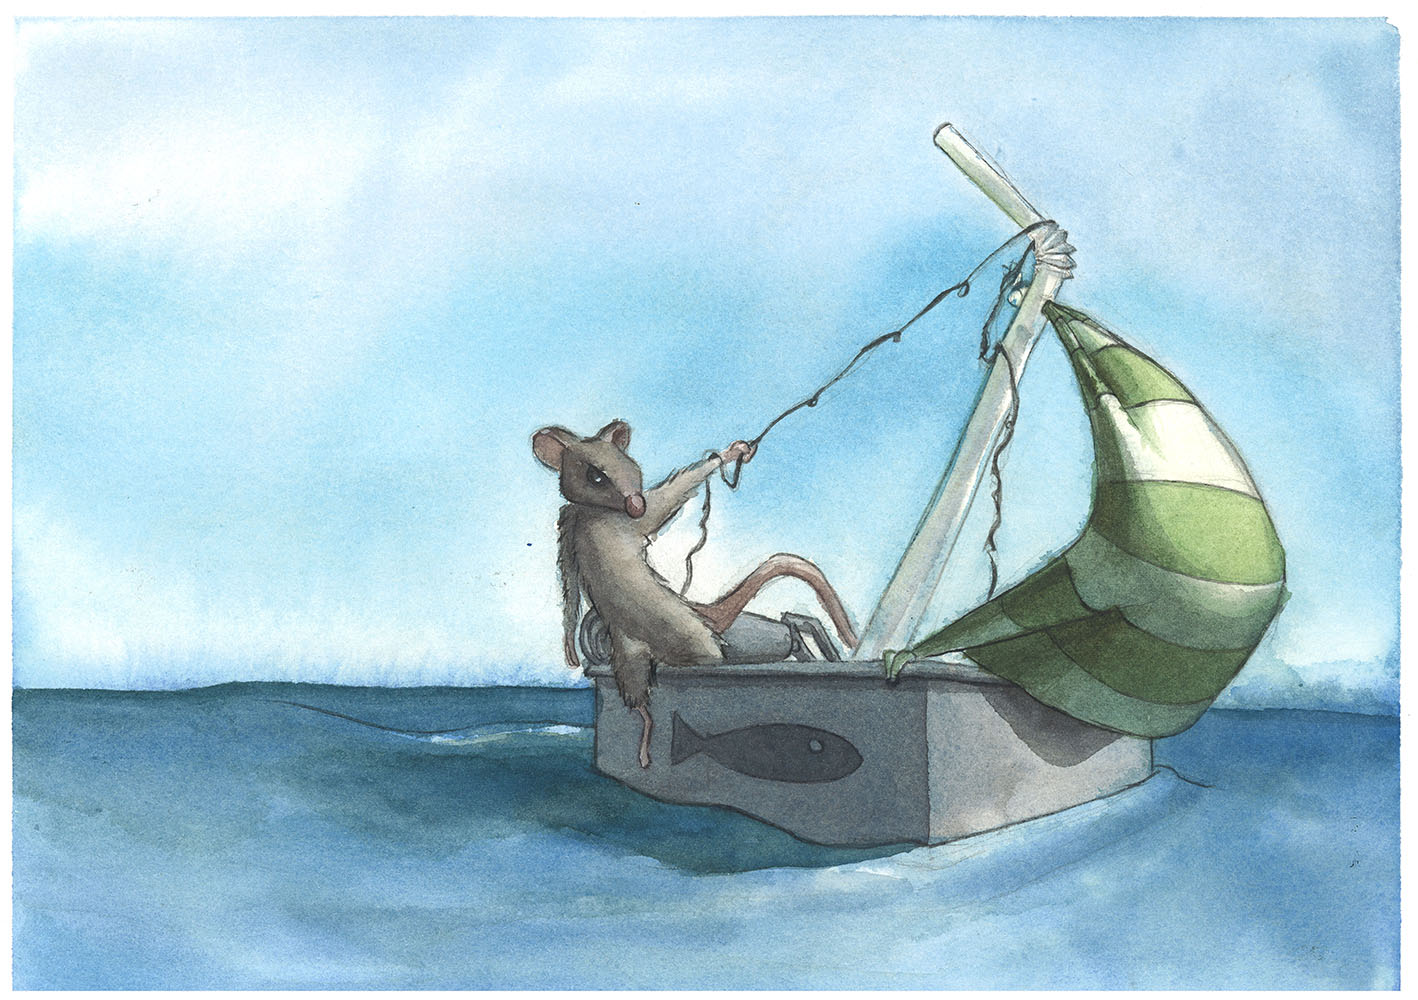 mouse sailing unadjusted.jpg